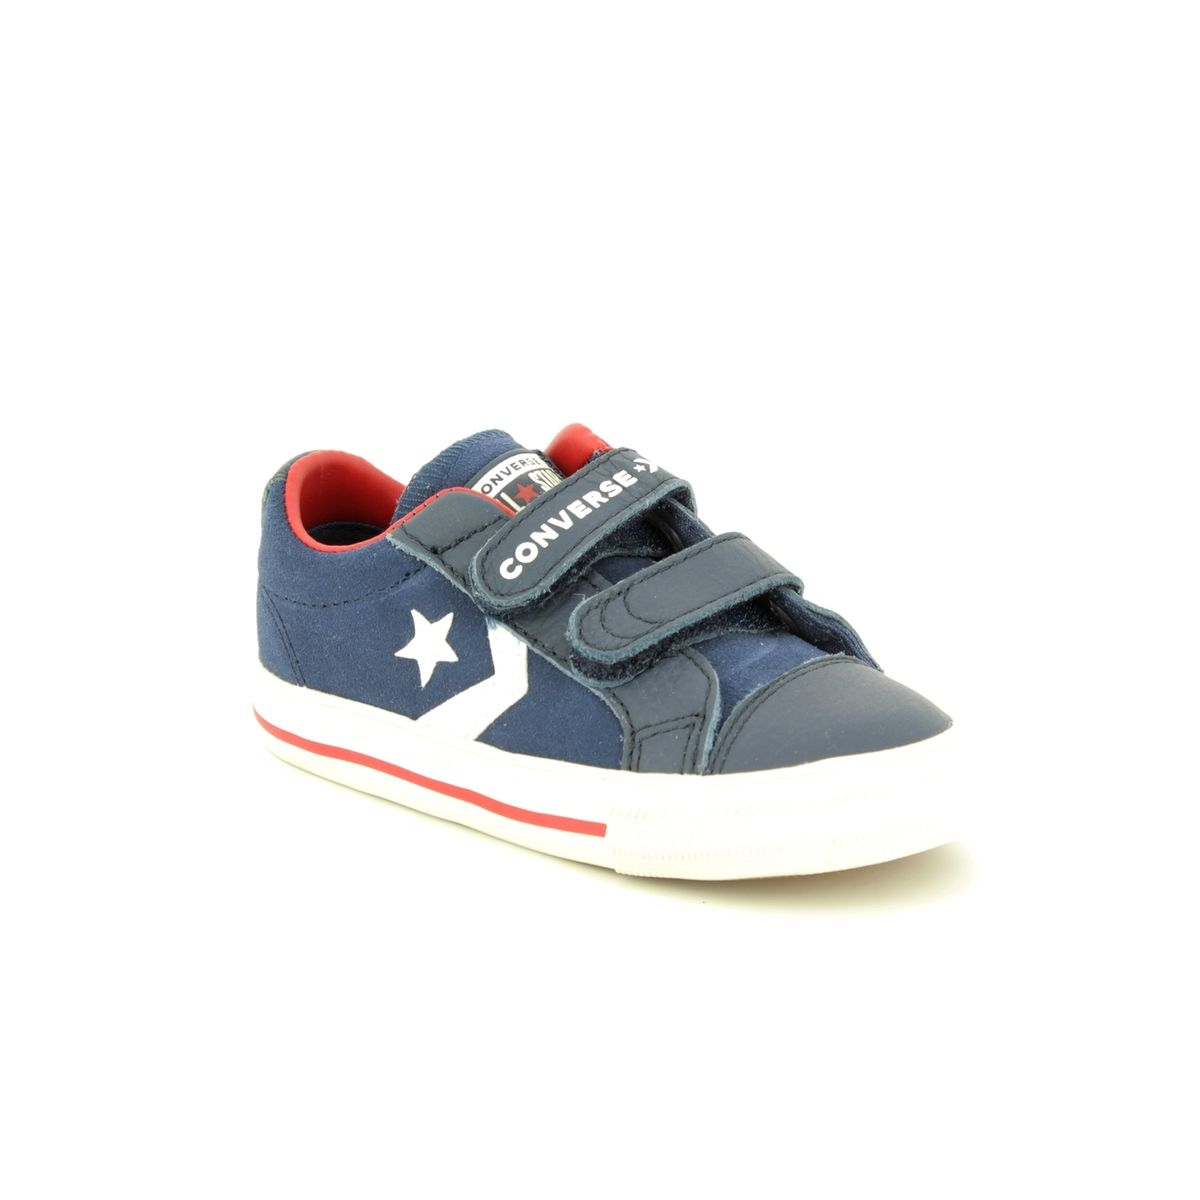 5ebce7a1273a Converse Star Player Velcro 762767C Navy suede boys trainers